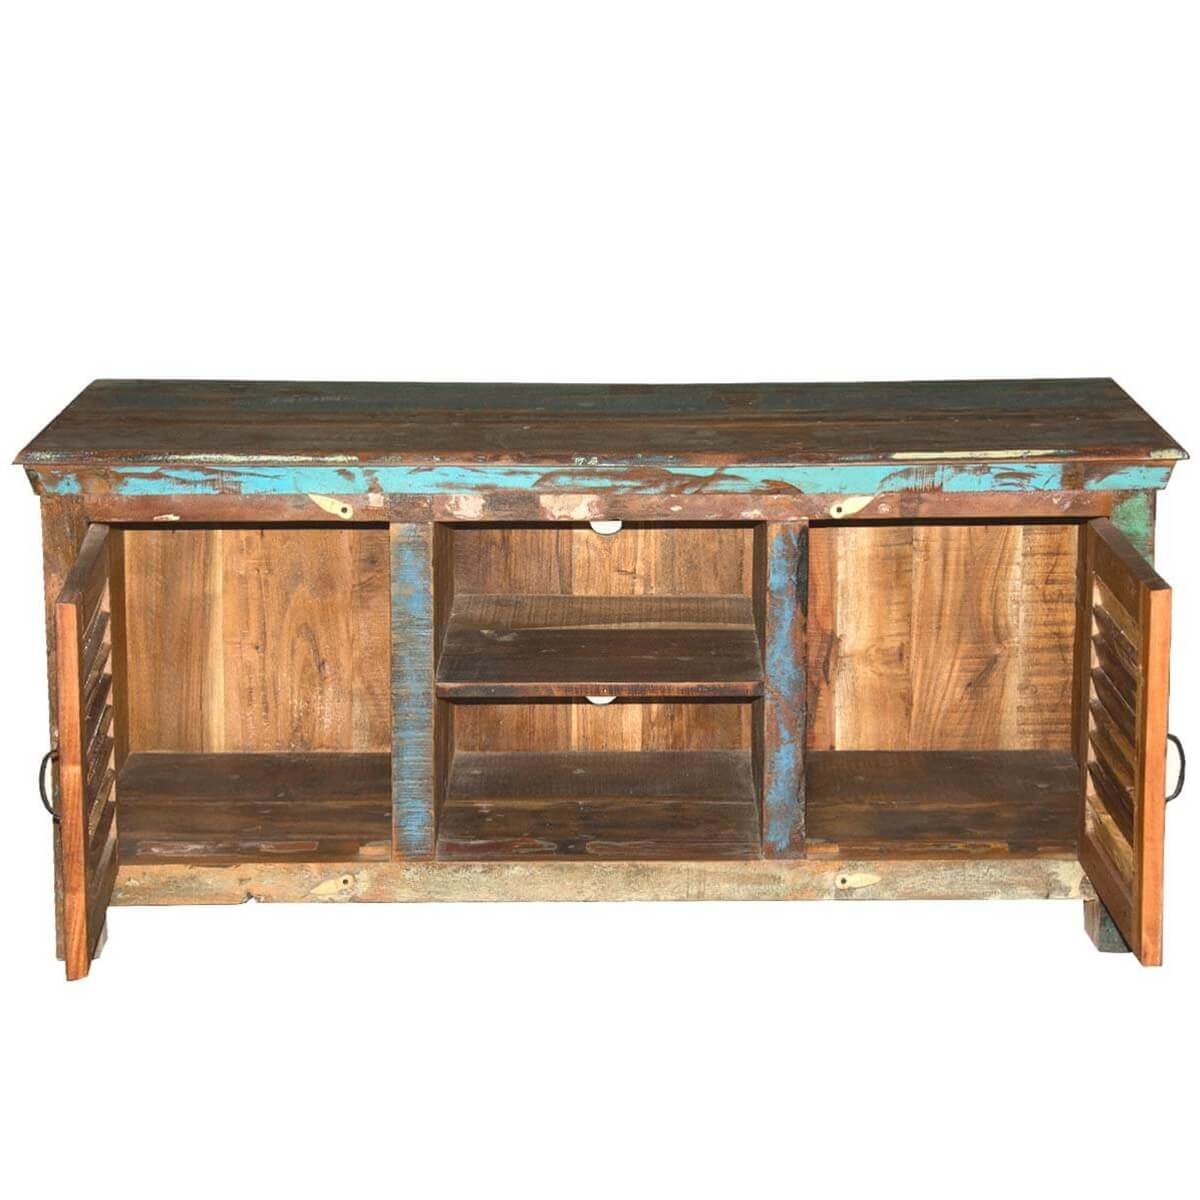 Appalachian Rustic Shutter Doors Reclaimed Wood TV Stand Media Console - Rustic Shutter Doors Reclaimed Wood TV Stand Media Console